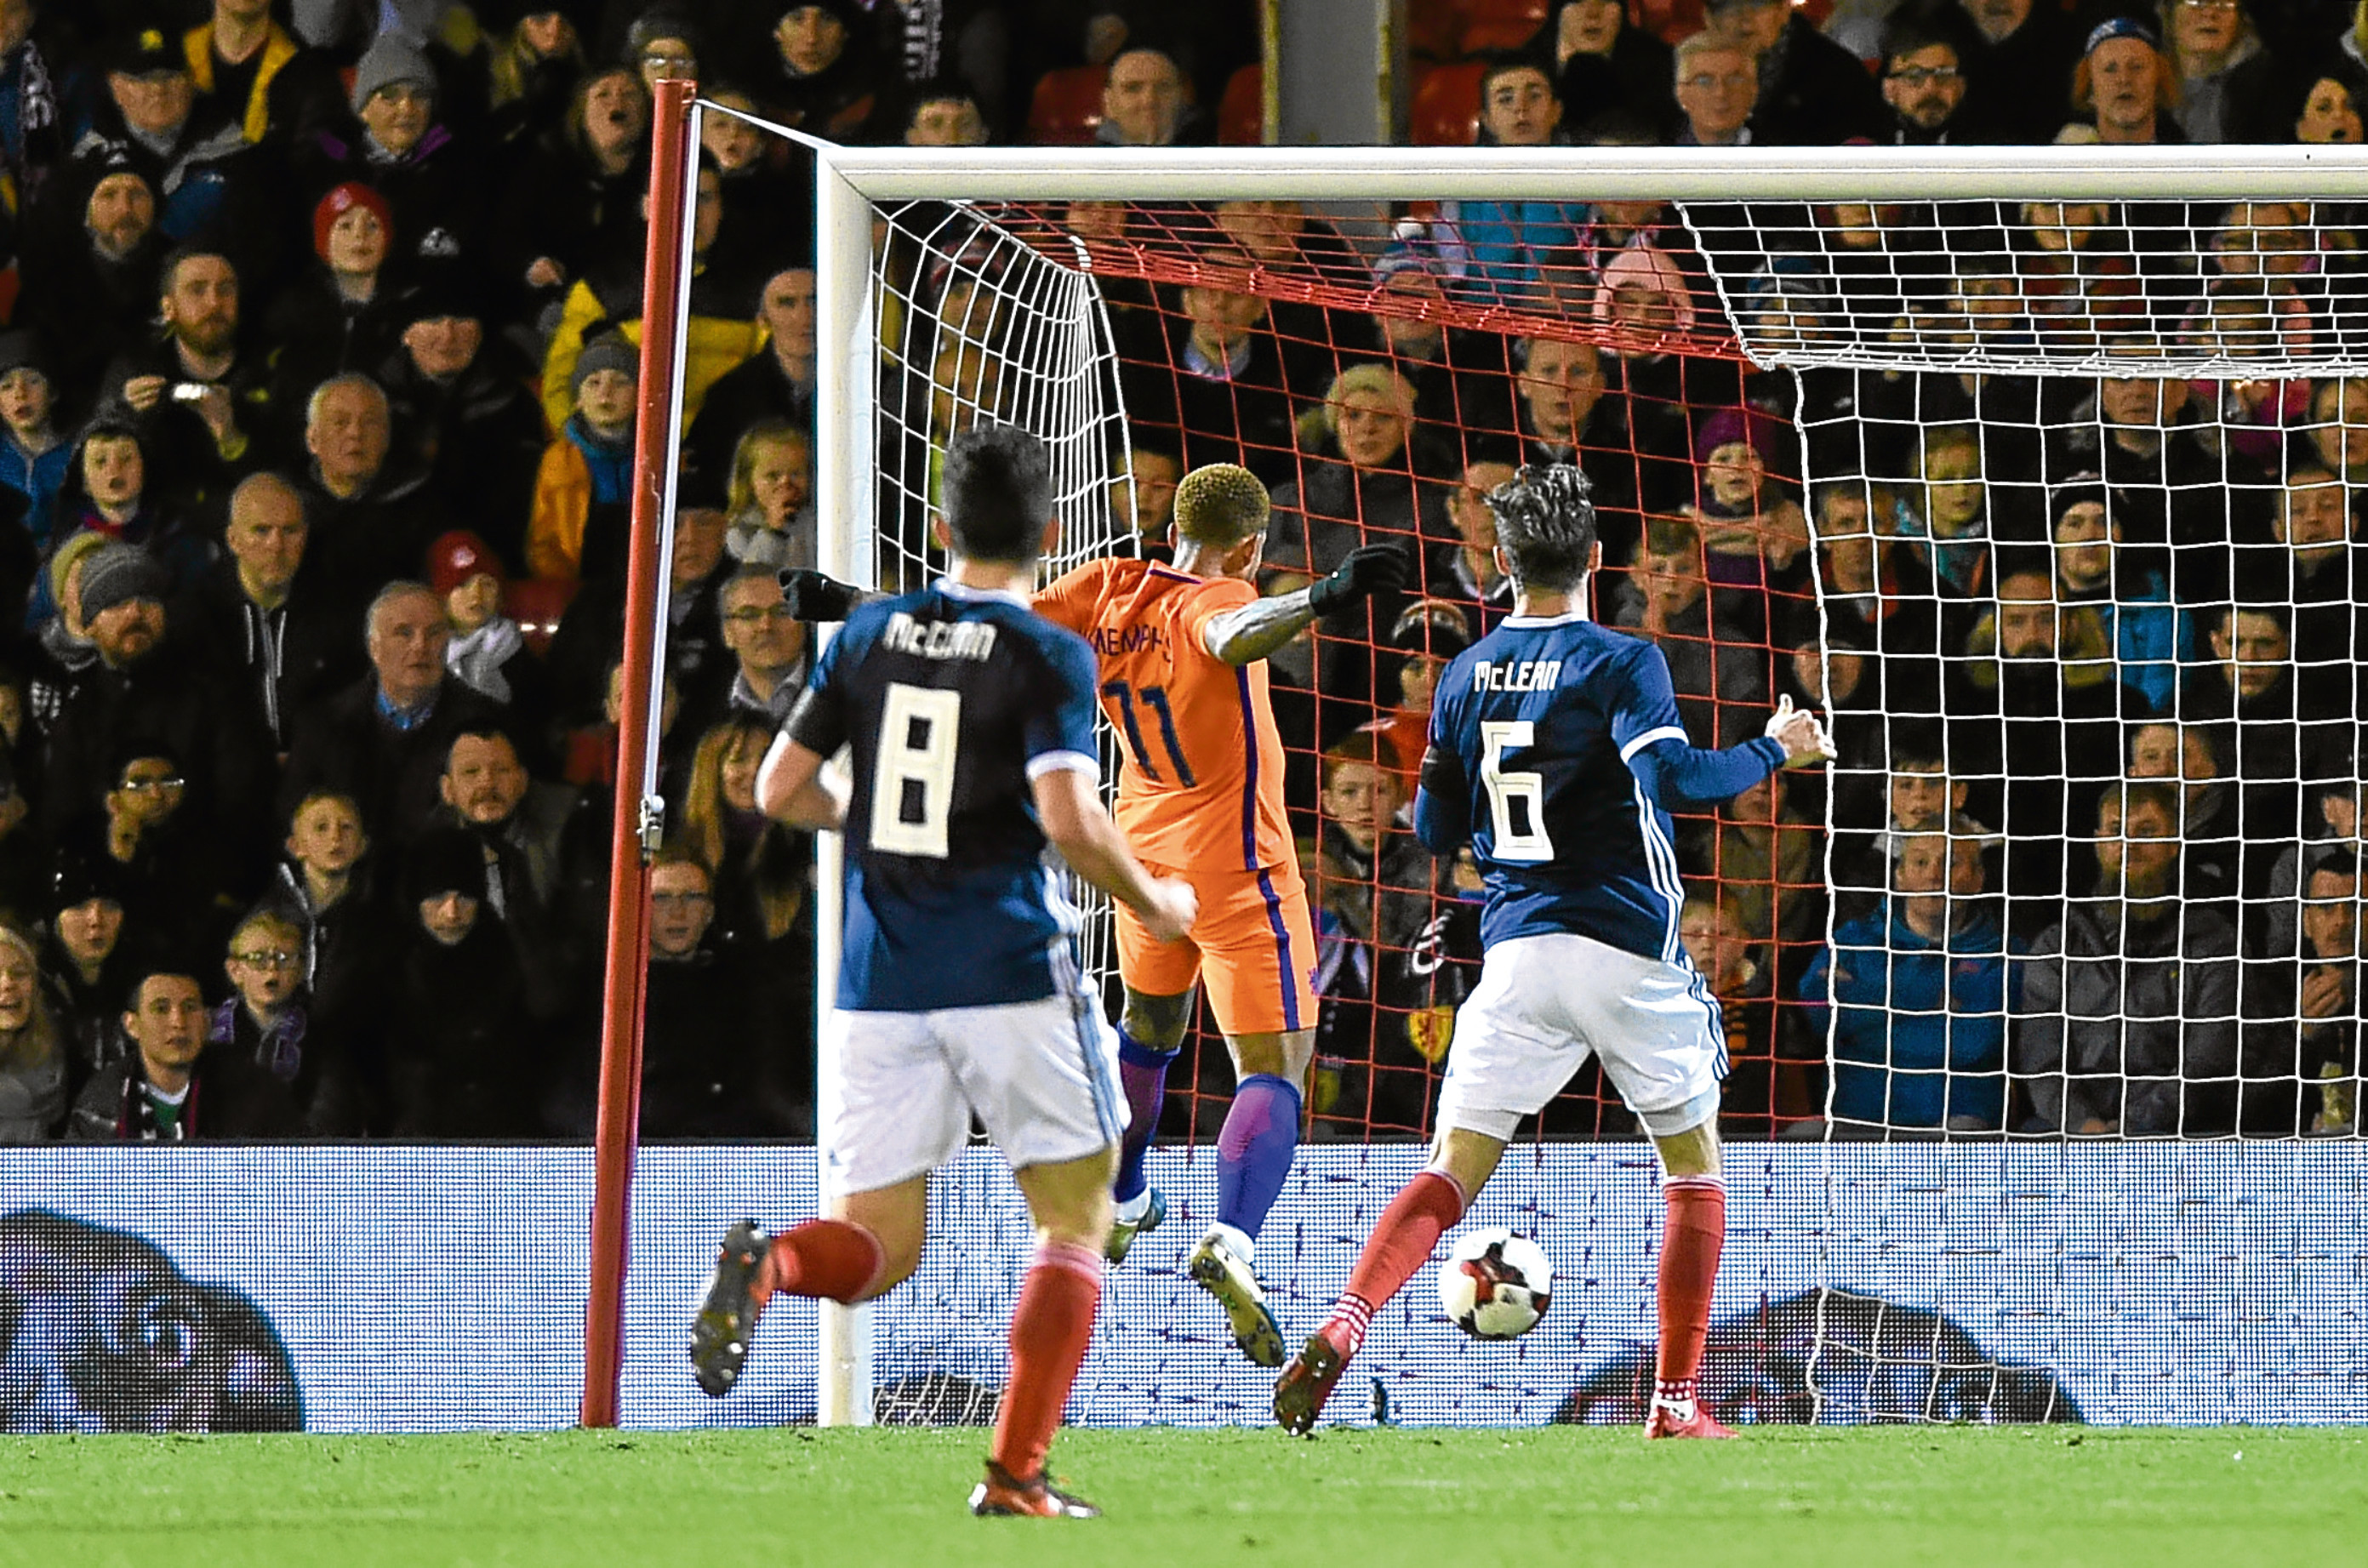 Scotland v Netherlands at Pittodrie Stadium